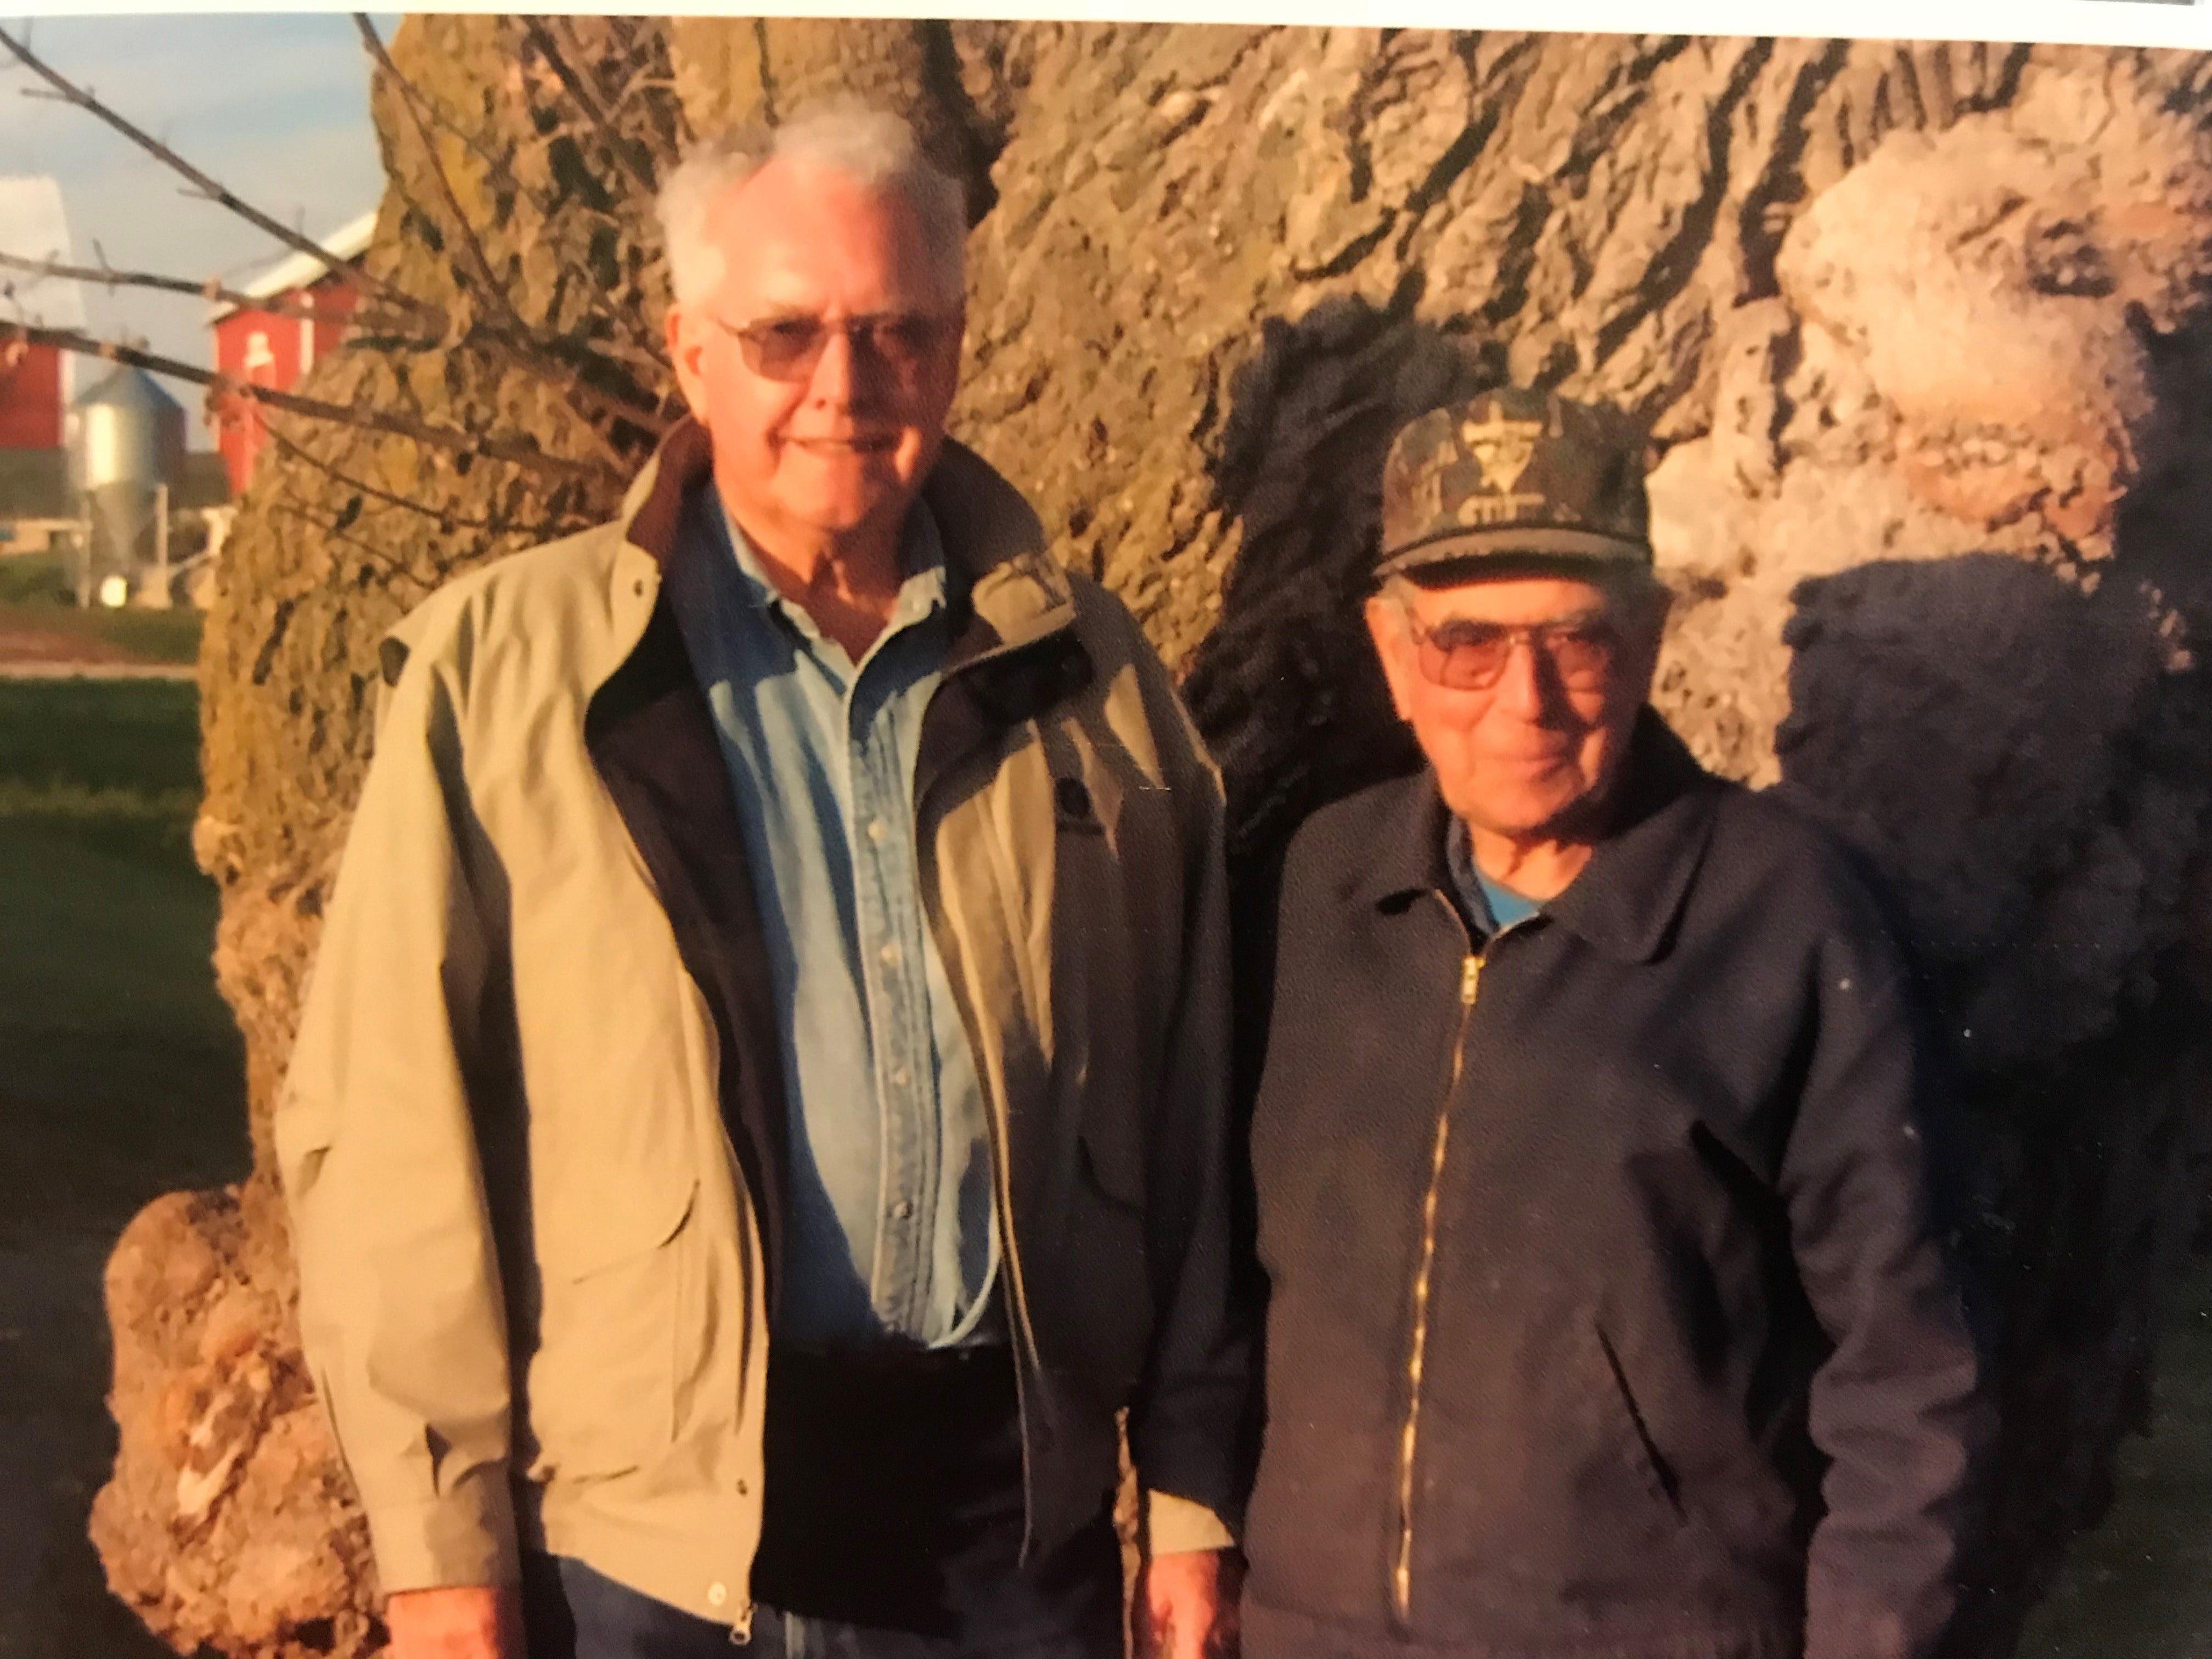 Dayton TerBeest, 94, and his younger brother, David, 90, communicate daily though emails and lettters.